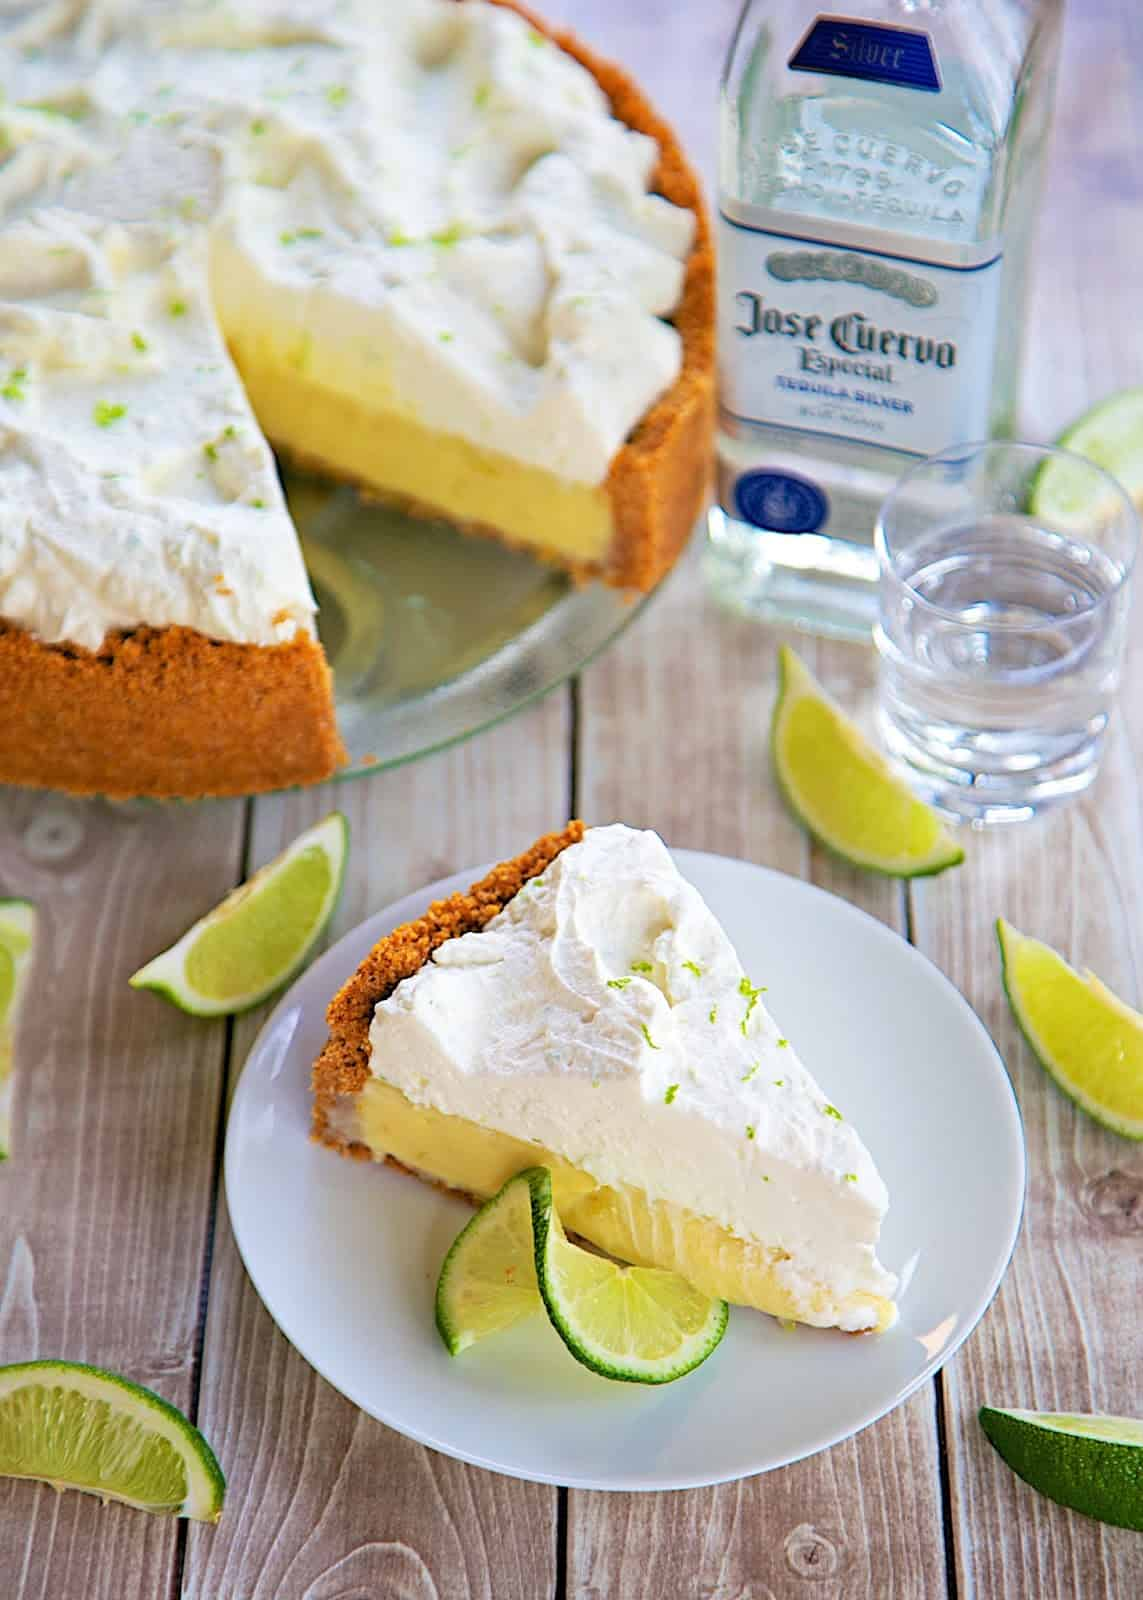 Tequila Key Lime Pie Recipe - cinnamon graham cracker crust, quick key lime pie filling kicked up with a hint of tequila and topped with homemade whipped cream. Perfect for Cinco de Mayo! Delicious Mexican dessert recipe.